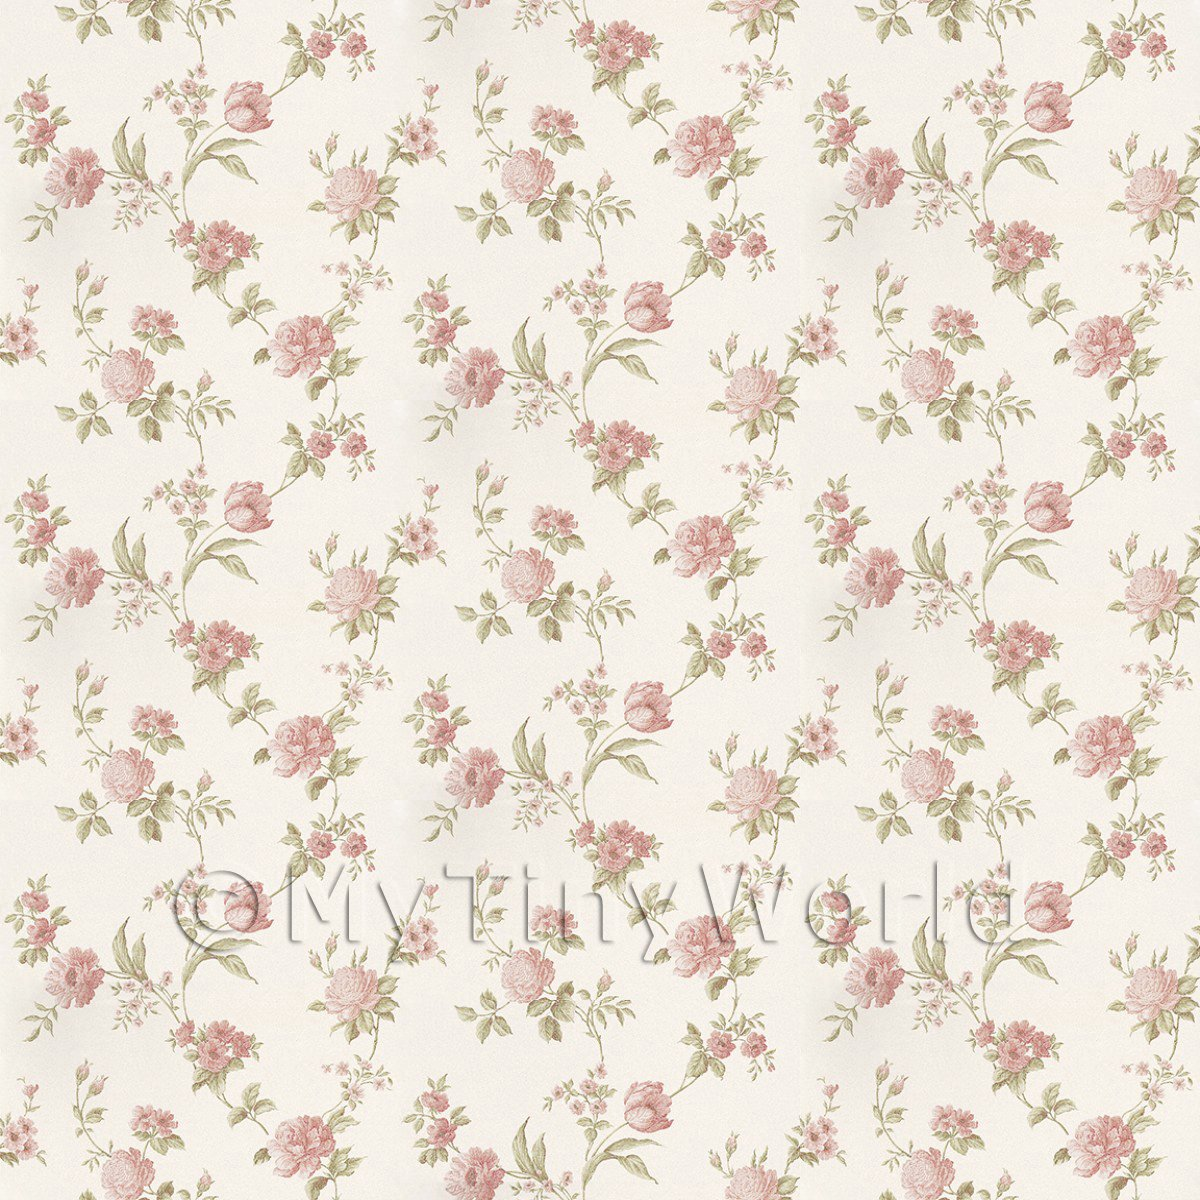 Pack of 5 Dolls House Mixed Pink Flowers On Pale White Wallpaper Sheets